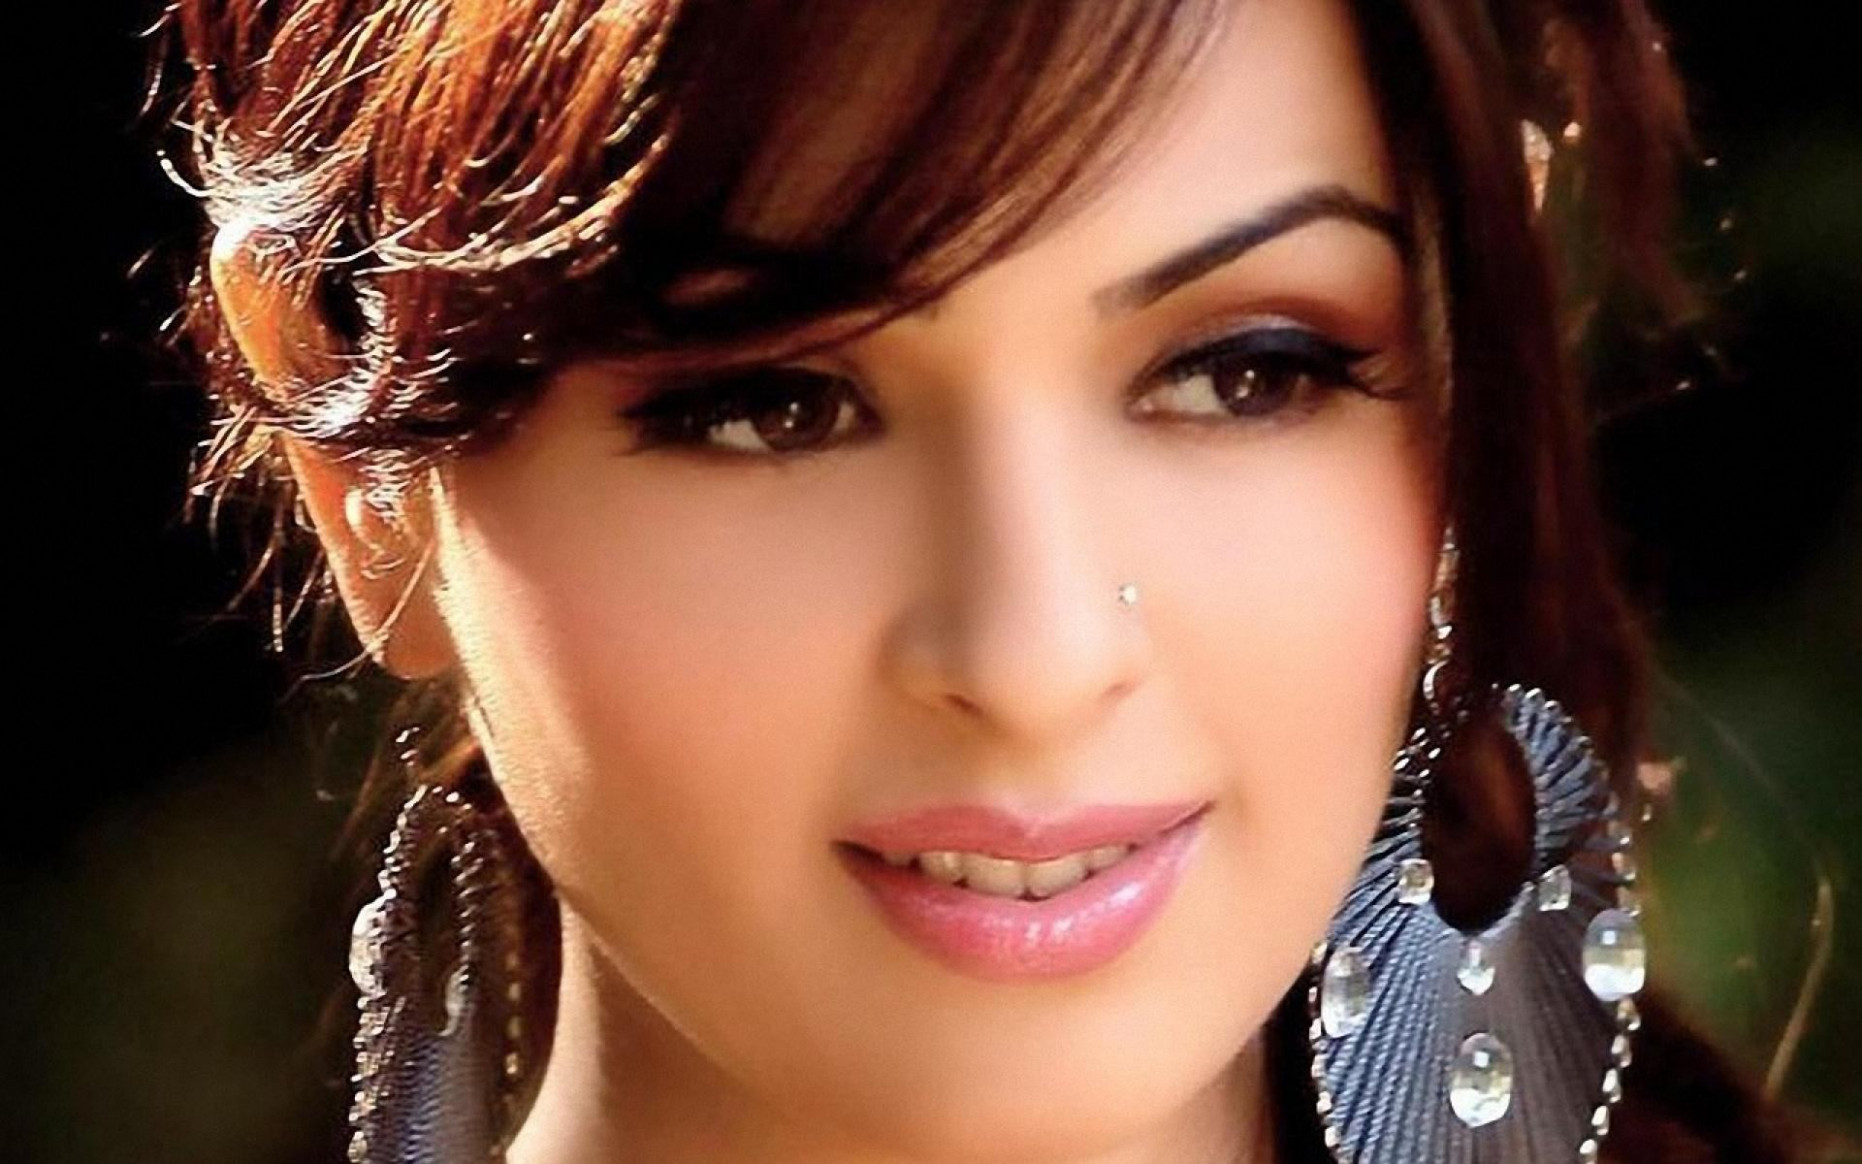 HD Wallpapers of Bollywood Actress (68+ images)